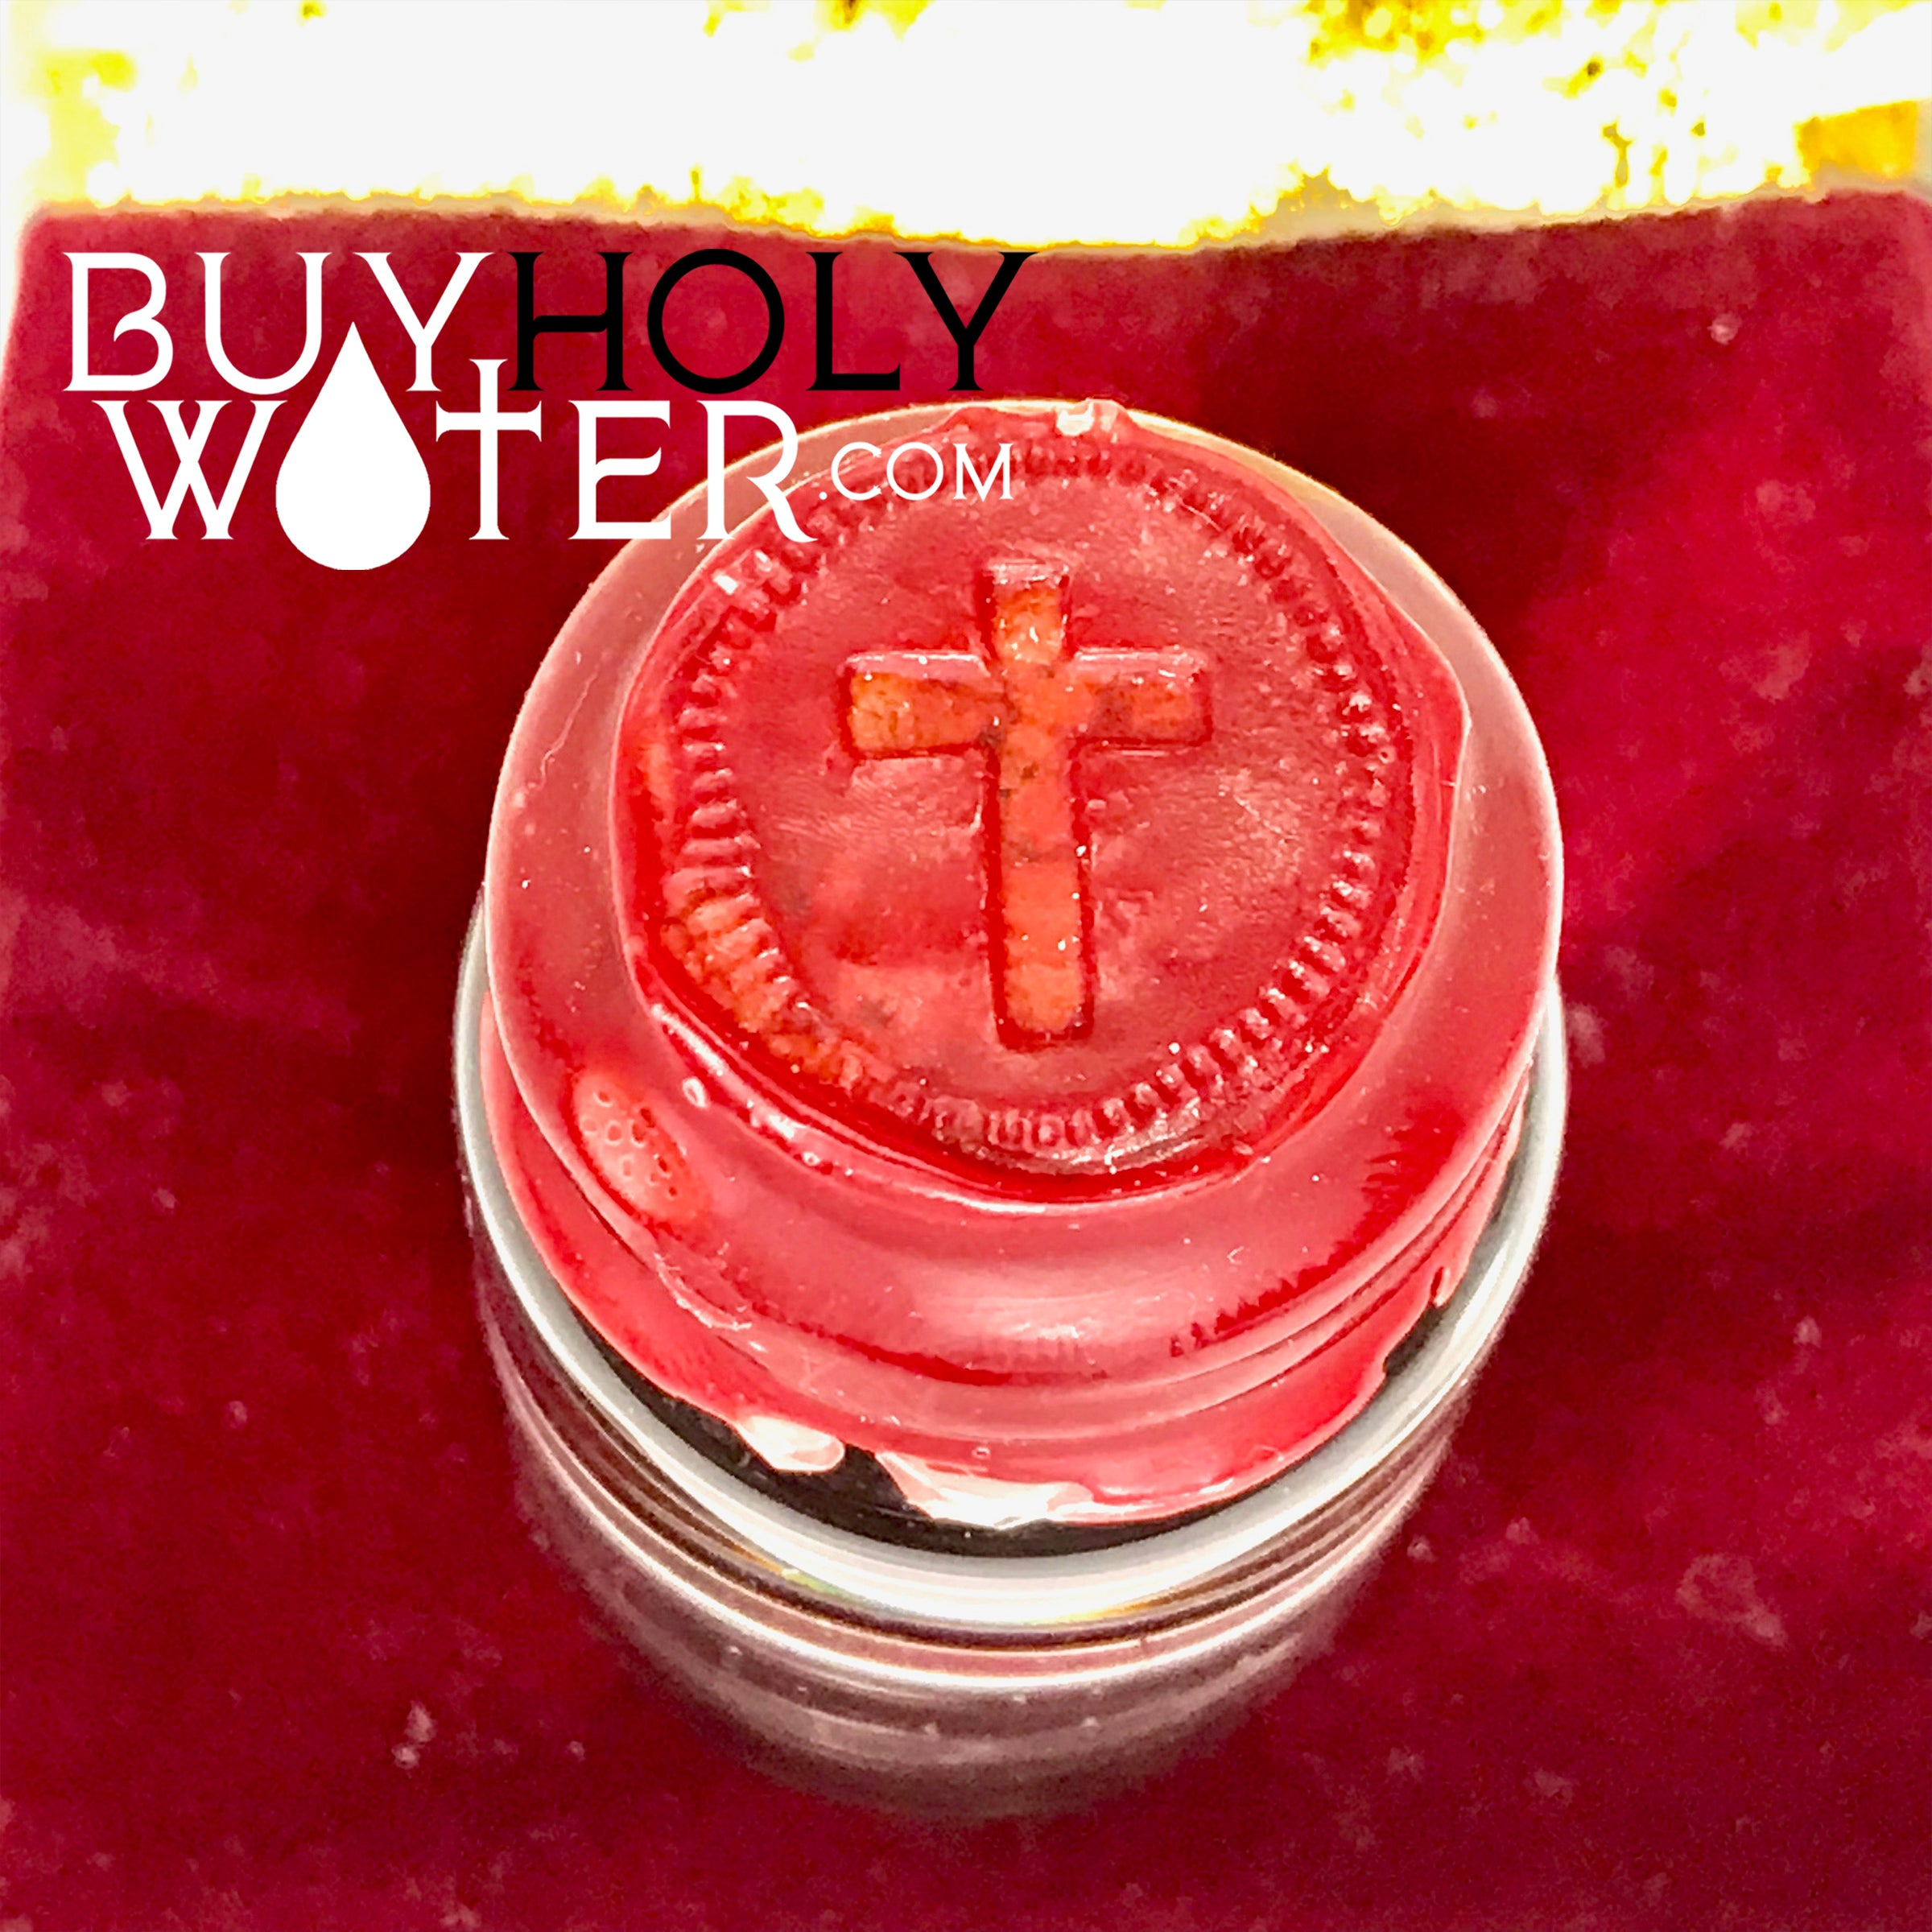 Authentic Holy Water Wax Dipped Stamped 25mL Vial Blessed By Pope Hand Made. - $25.99